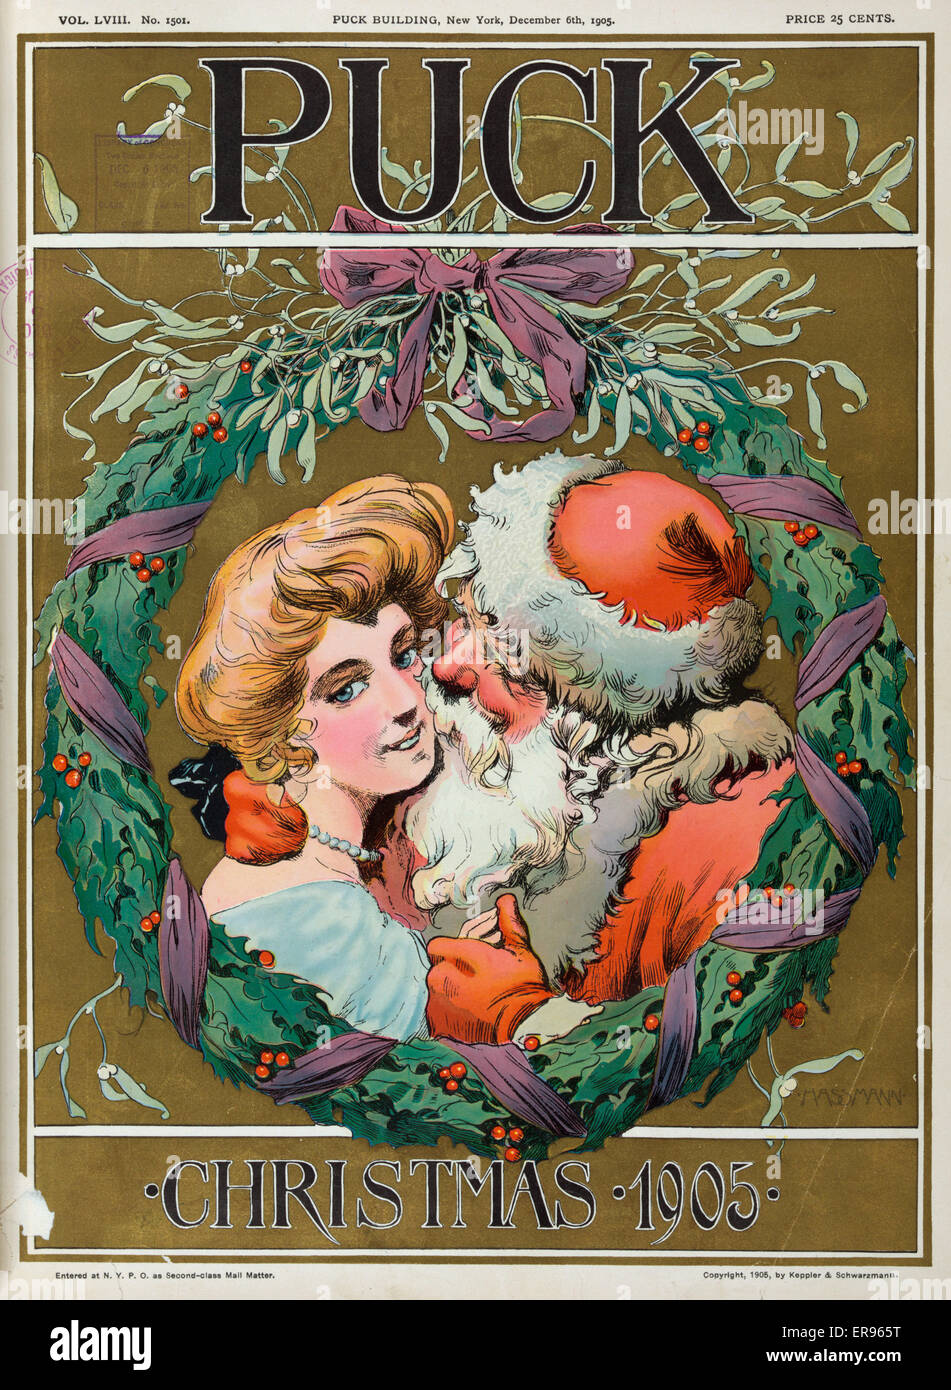 Puck christmas 1905 illustration shows santa claus kissing a illustration shows santa claus kissing a young woman on the cheek framed by a holly wreath date 1905 december 6 jeuxipadfo Choice Image